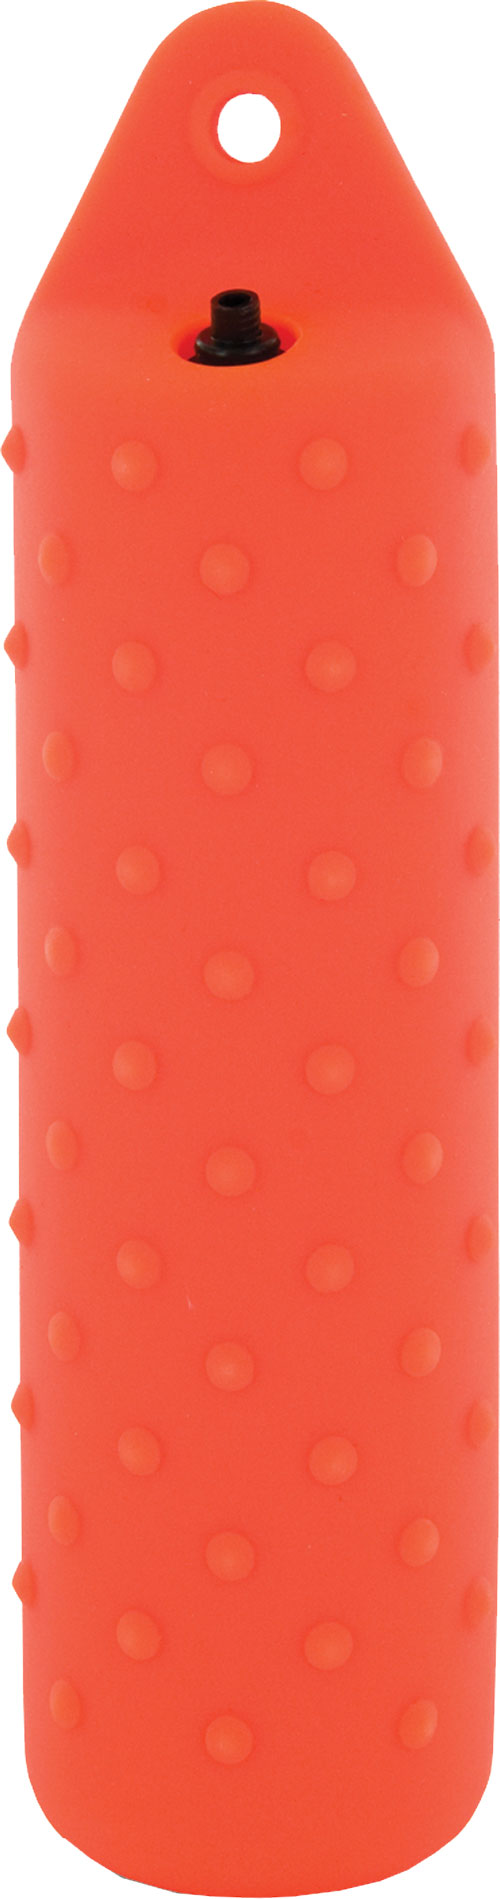 Sportdog Orange Jumbo Plastic - Dummy